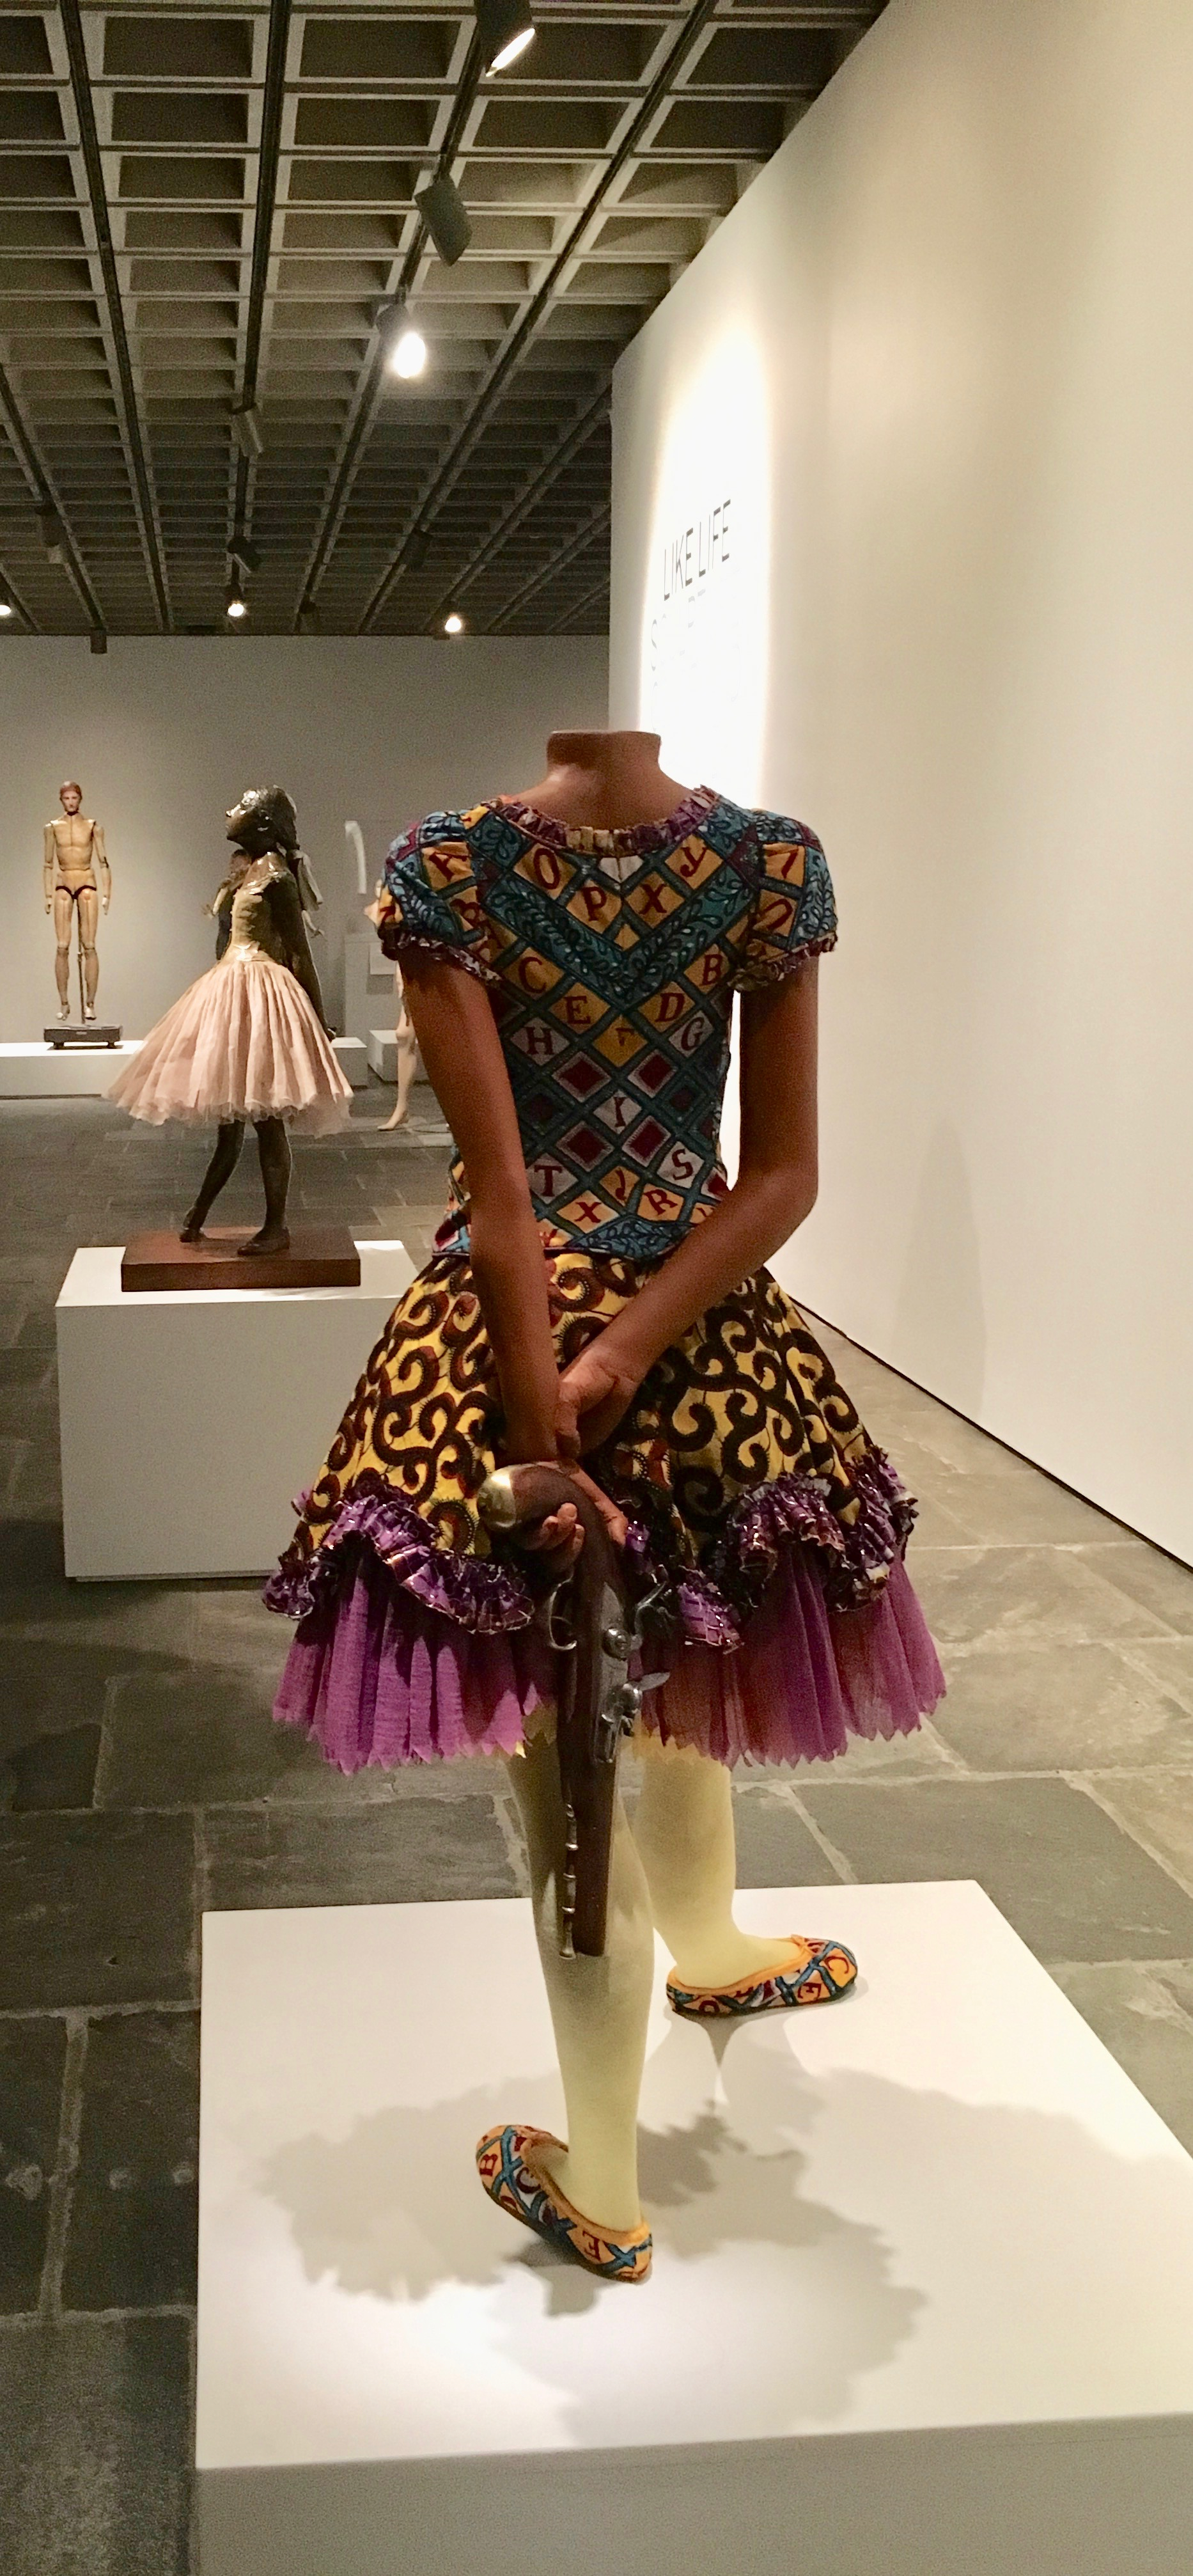 "Yinka Shonibare MBE's ""Girl Ballerina"" (2007) stalks Edgar Degas's famous bronze ""Little Fourteen-Year-Old Dancer"" (1881)."